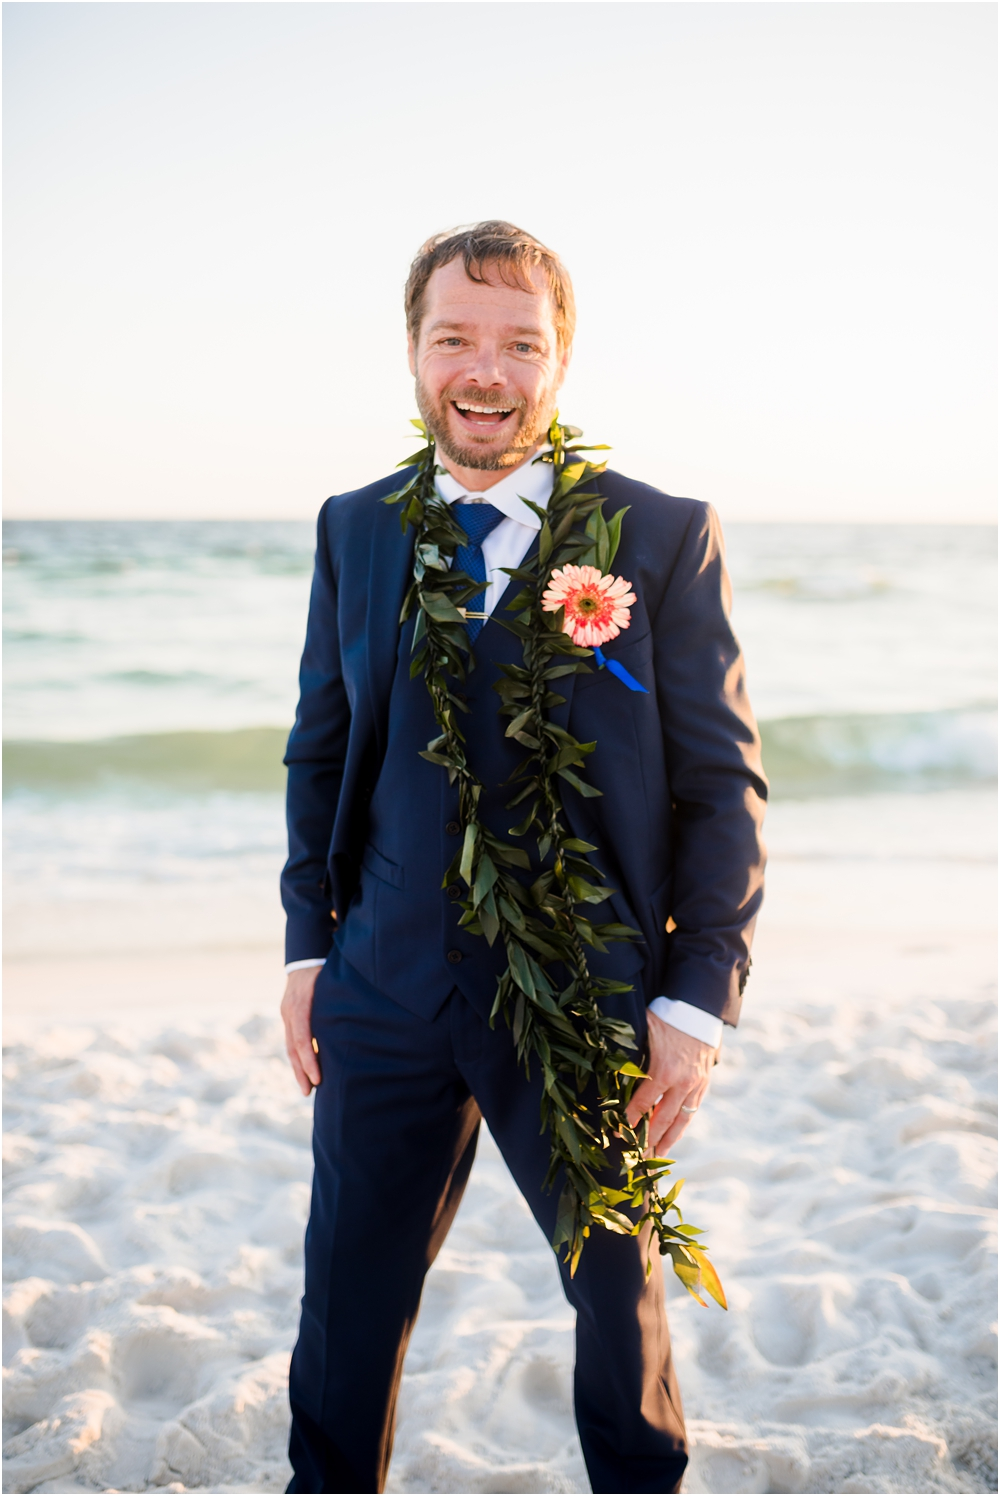 ledman-wedding-kiersten-stevenson-photography-30a-panama-city-beach-dothan-tallahassee-(472-of-763).JPG